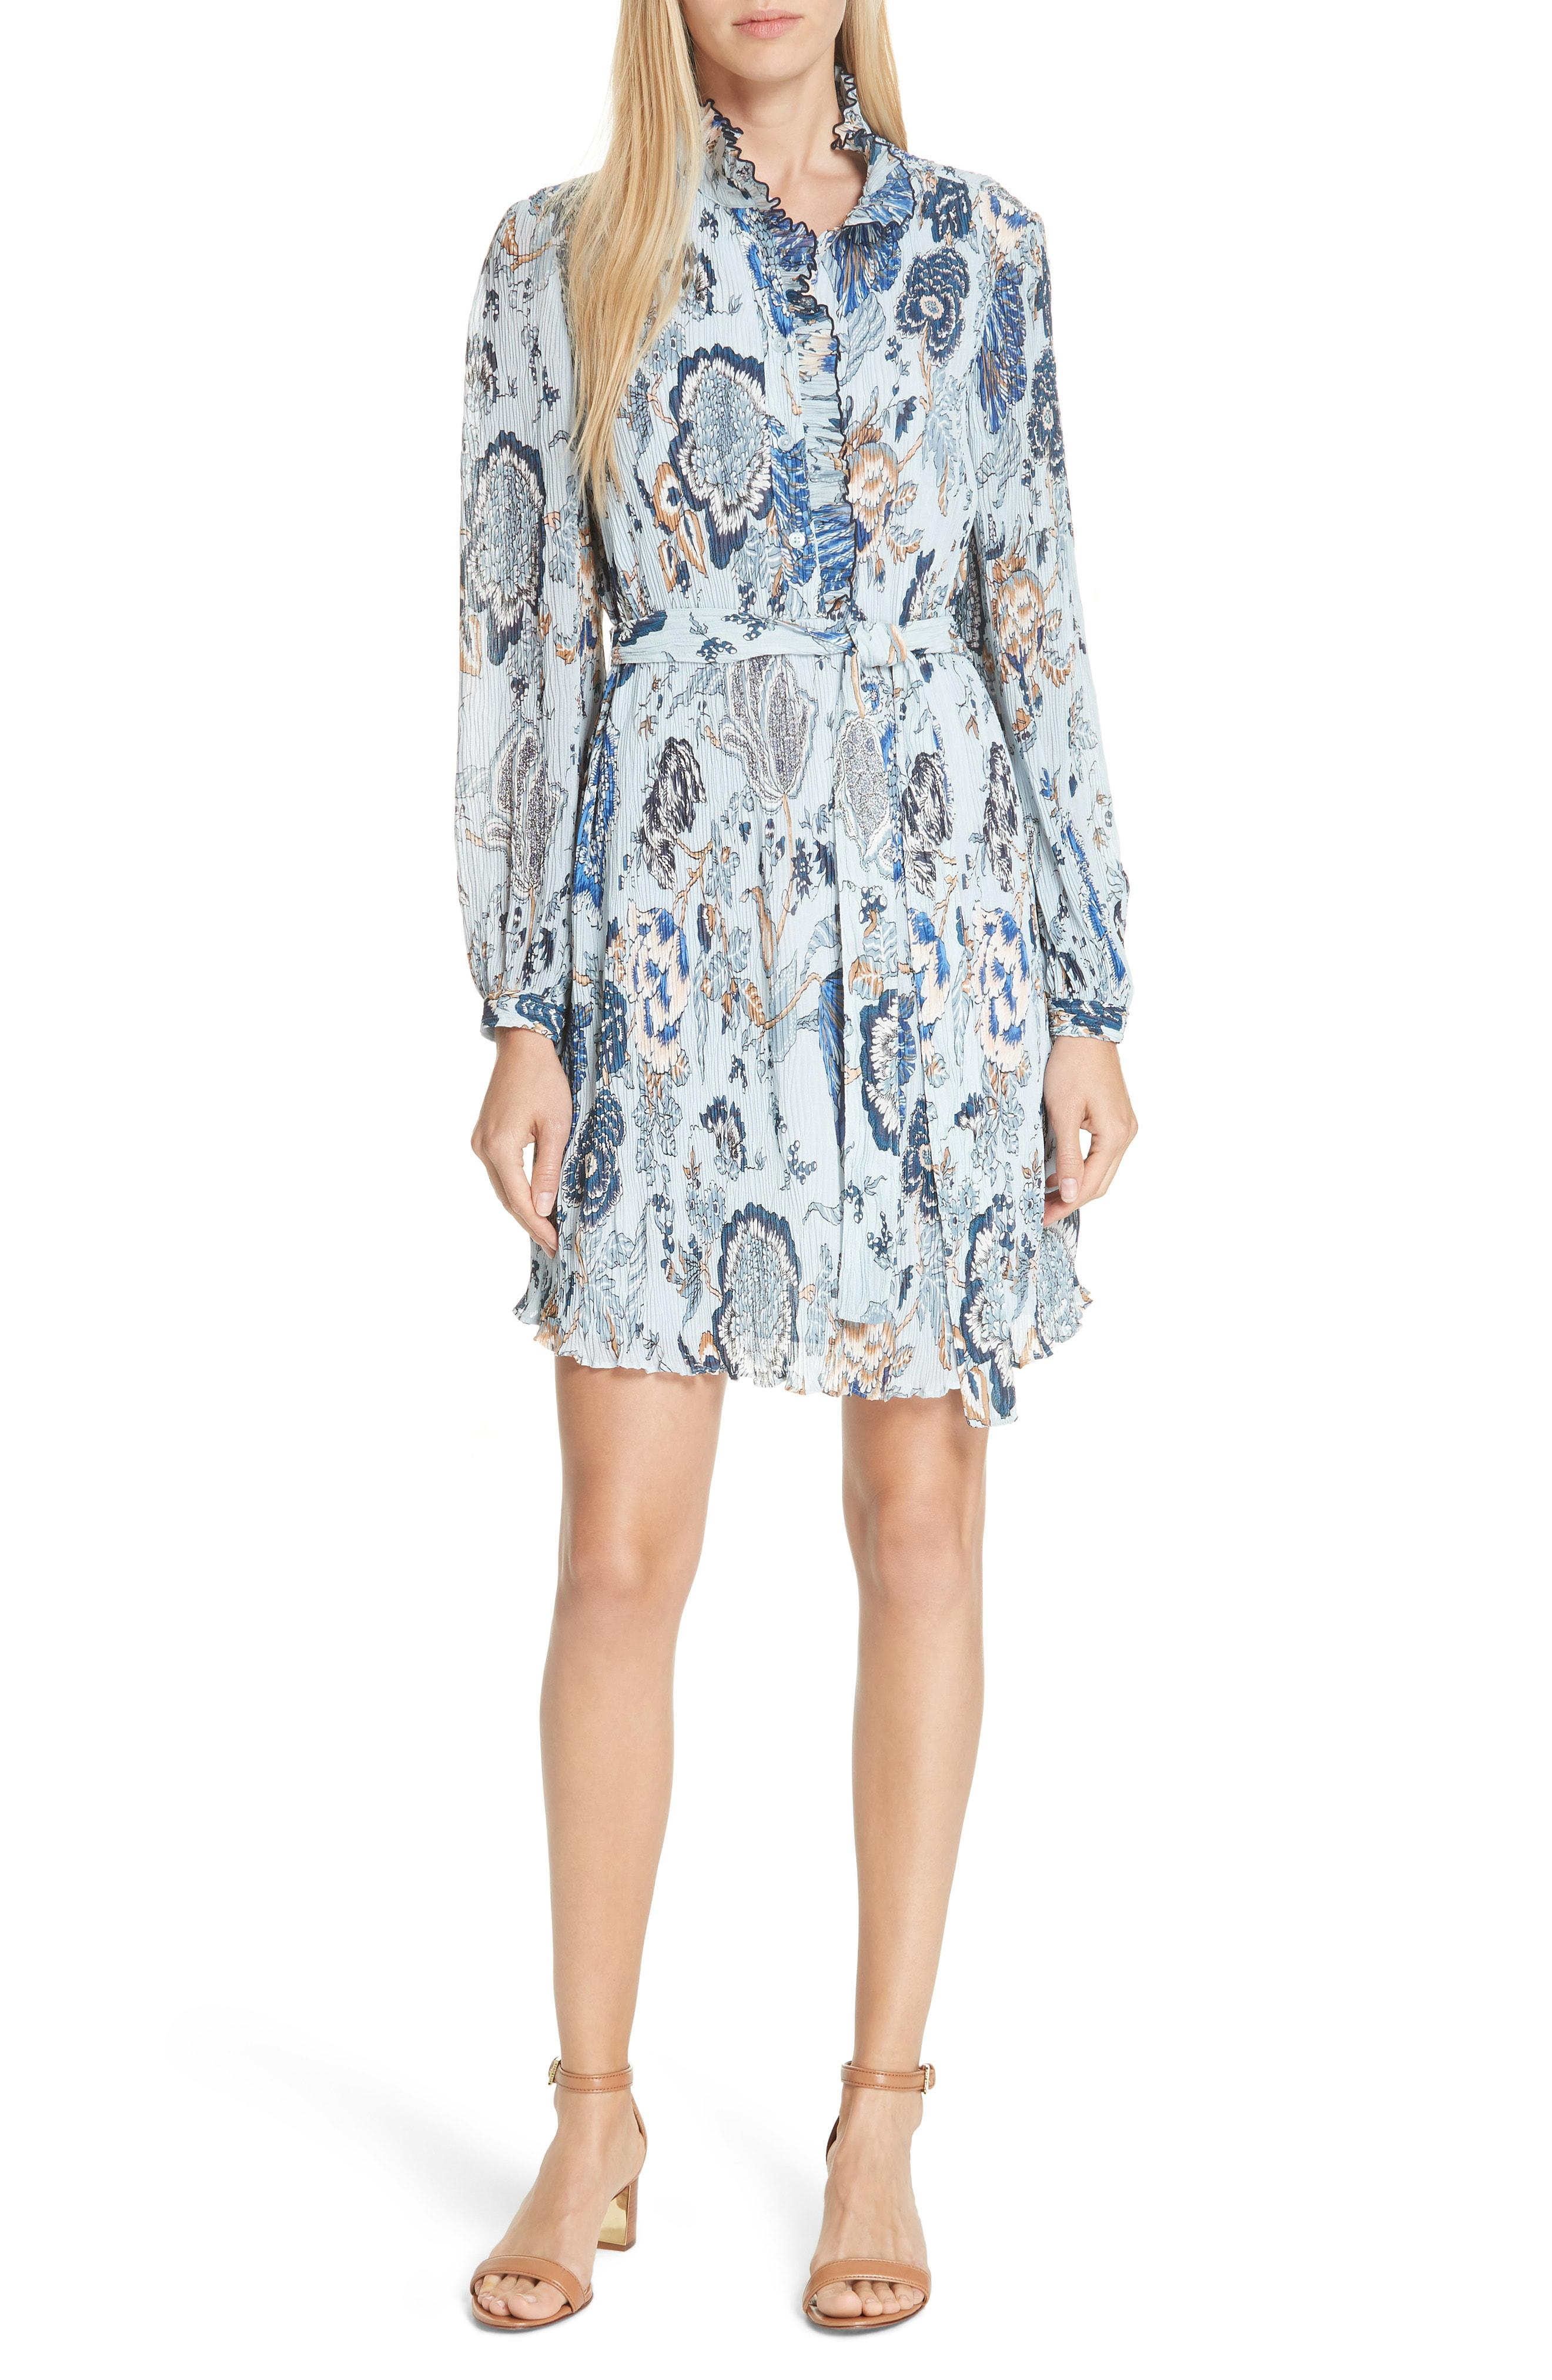 042ee29260a9 Lyst - Tory Burch Deneuve Floral Ruffle Minidress in Blue